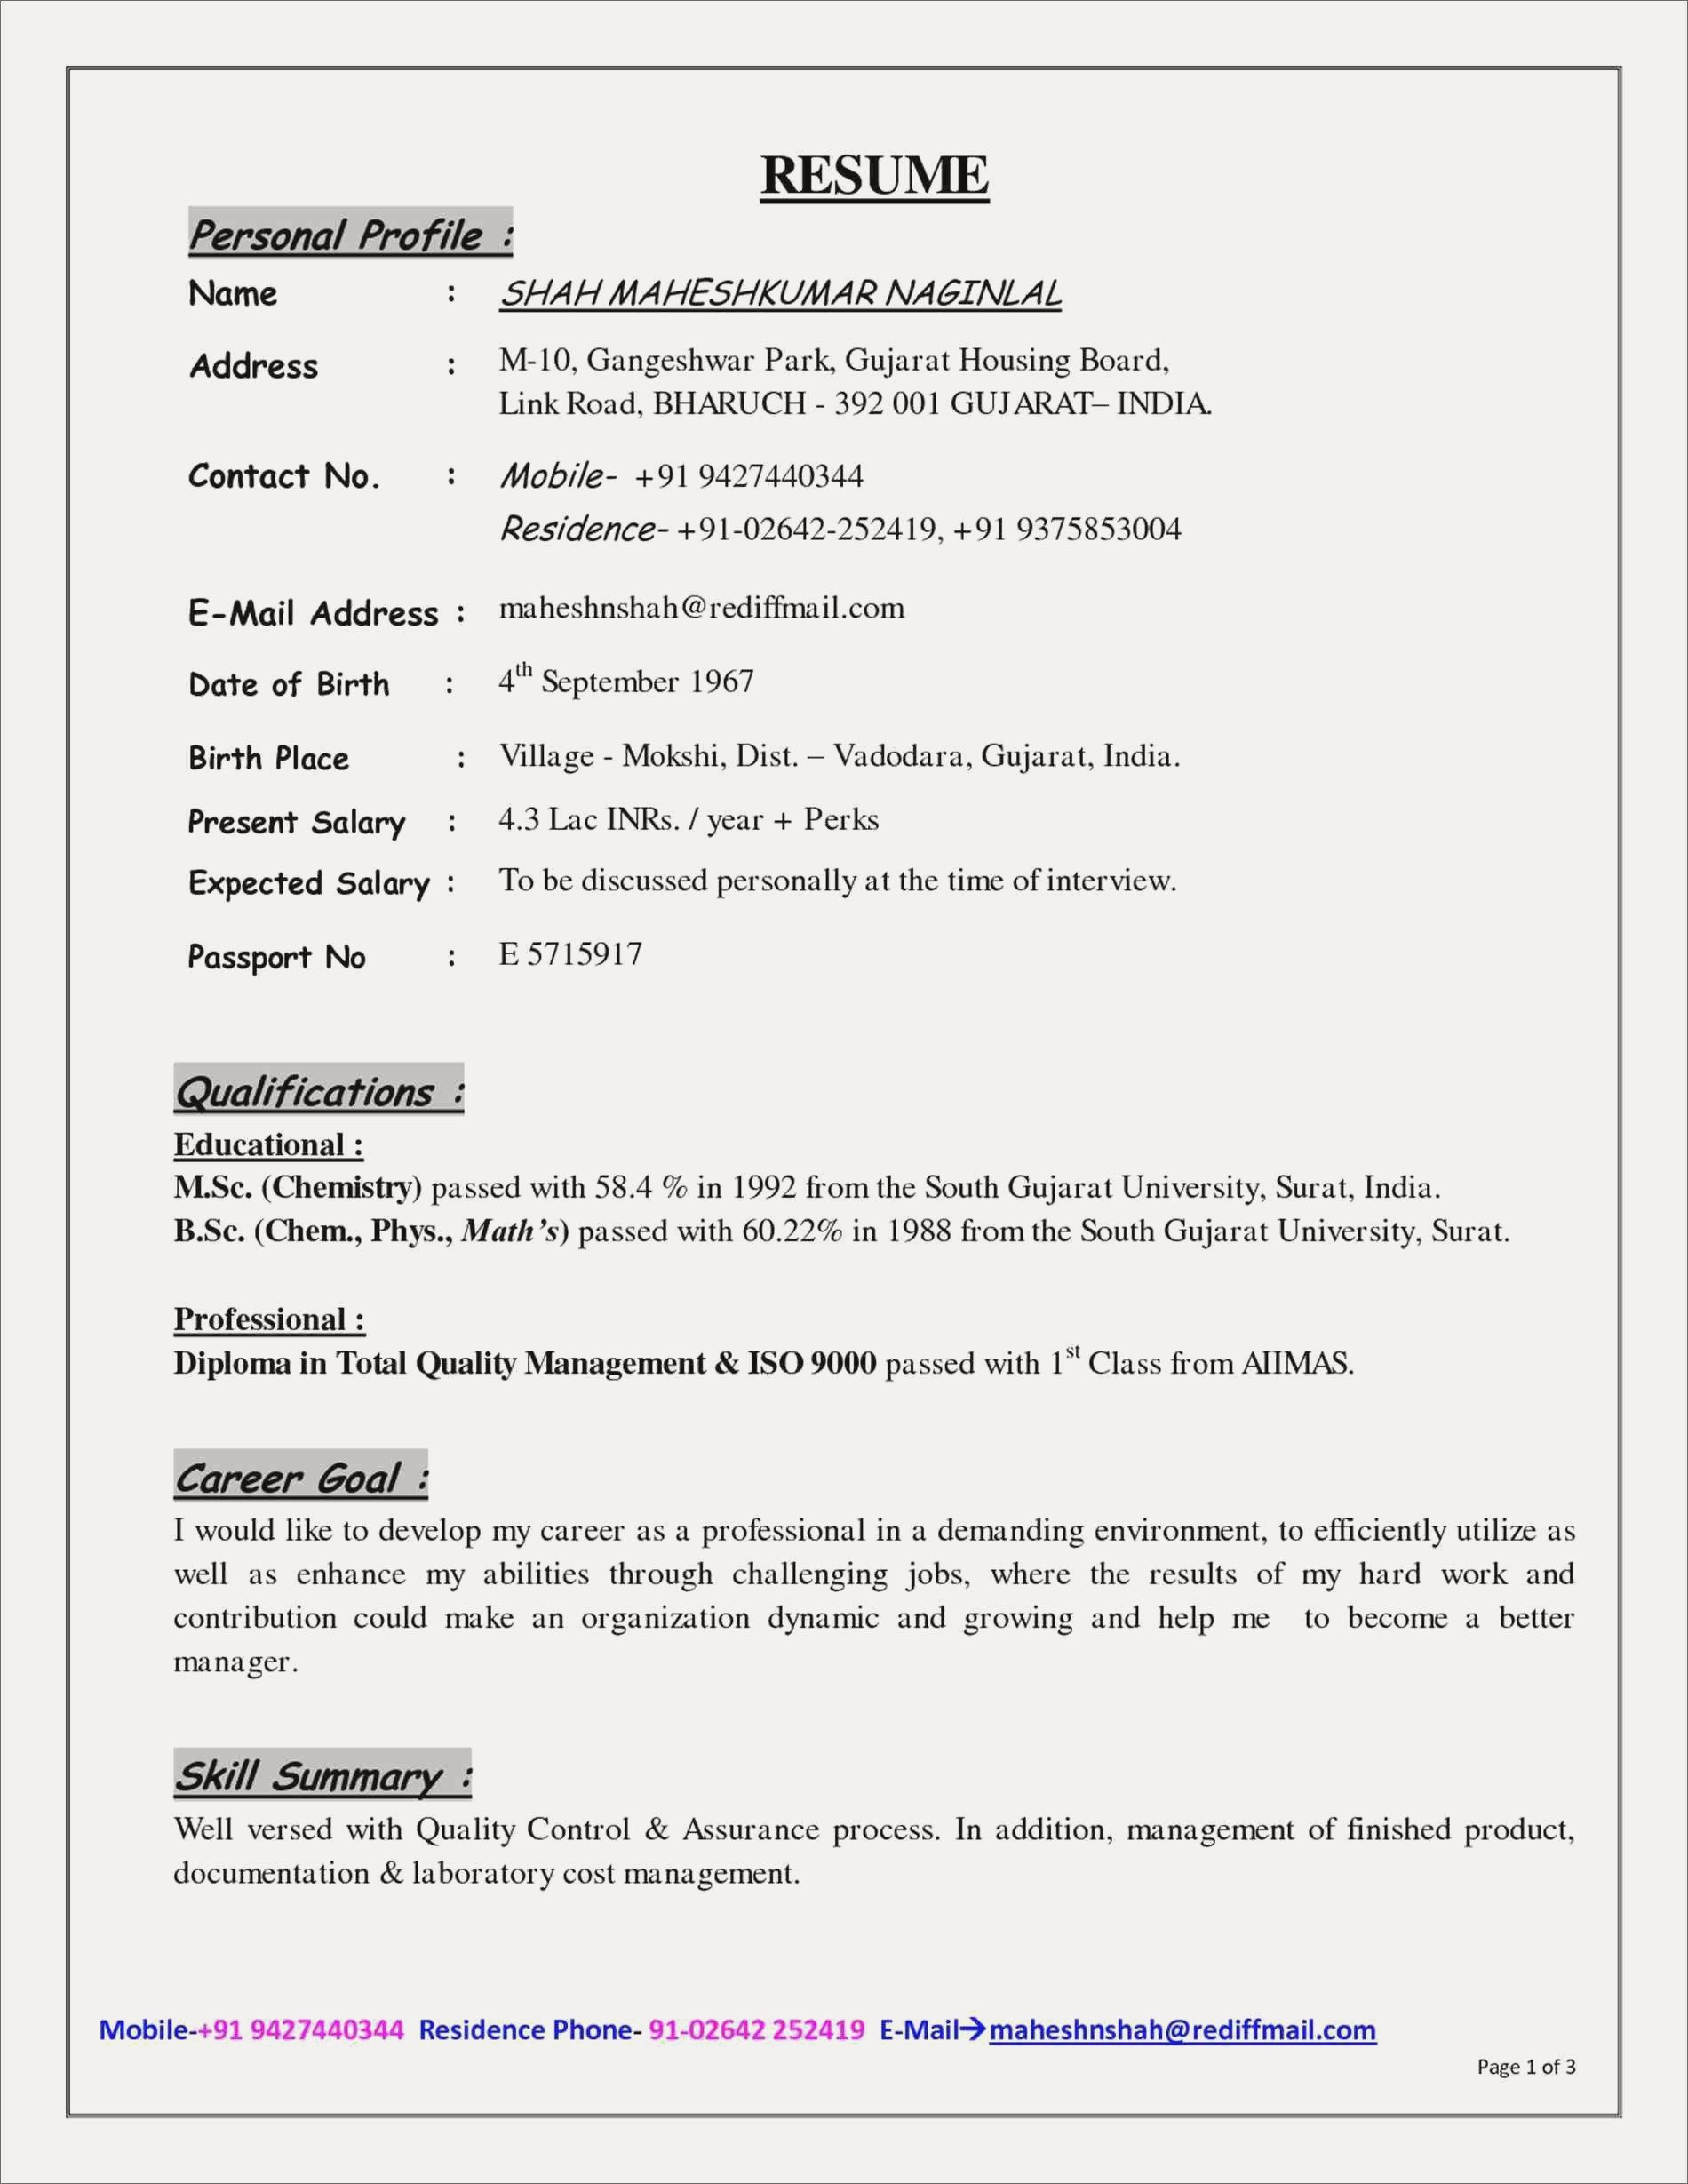 professional resume resume format for job interview pdfml